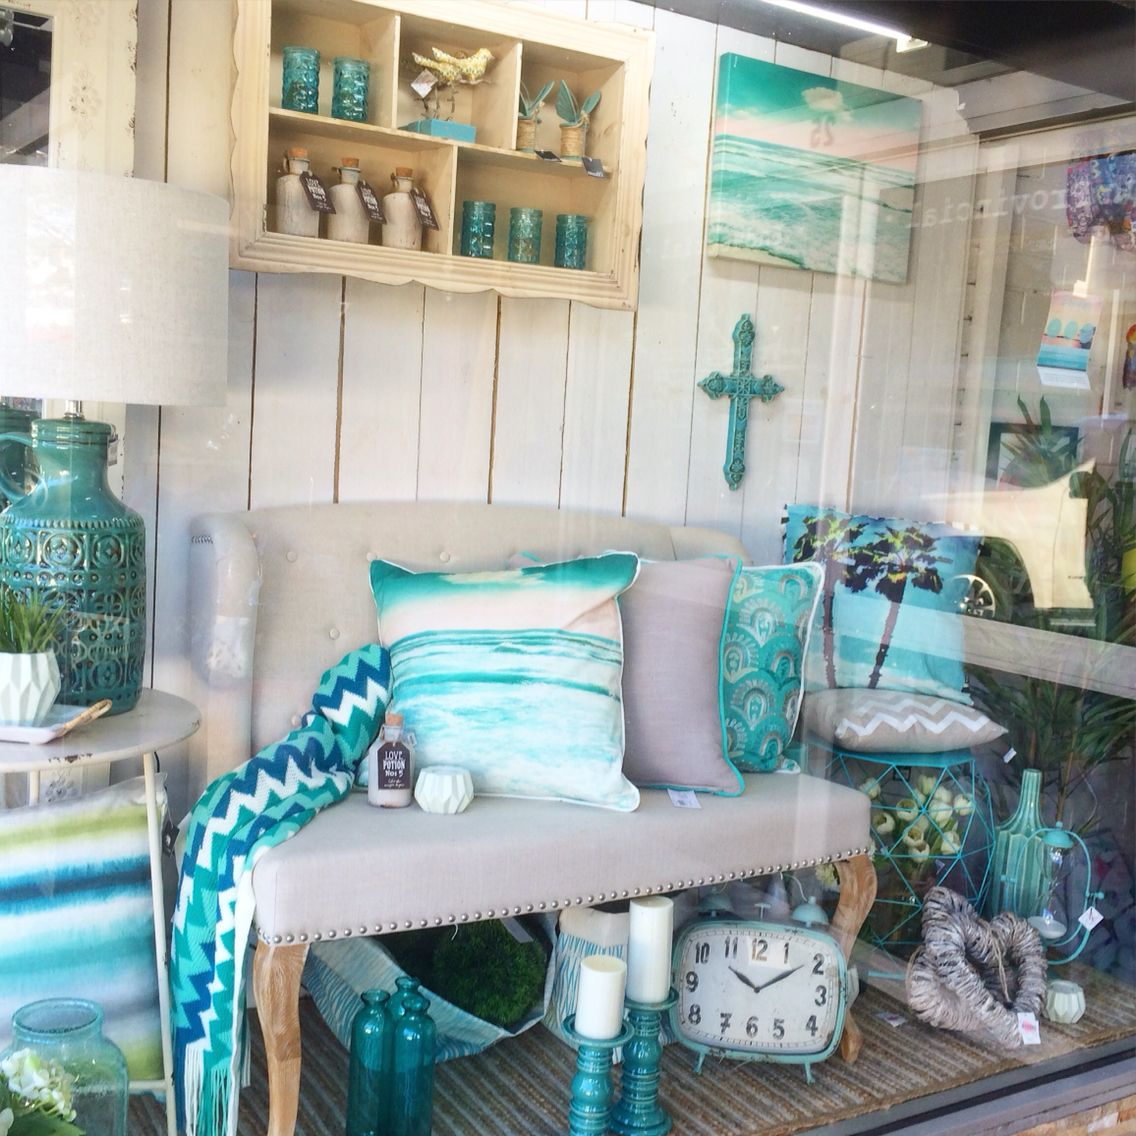 Home Decor Melbourne: Aqua, Mint, Blue, Turquoise Window Display At Our Home